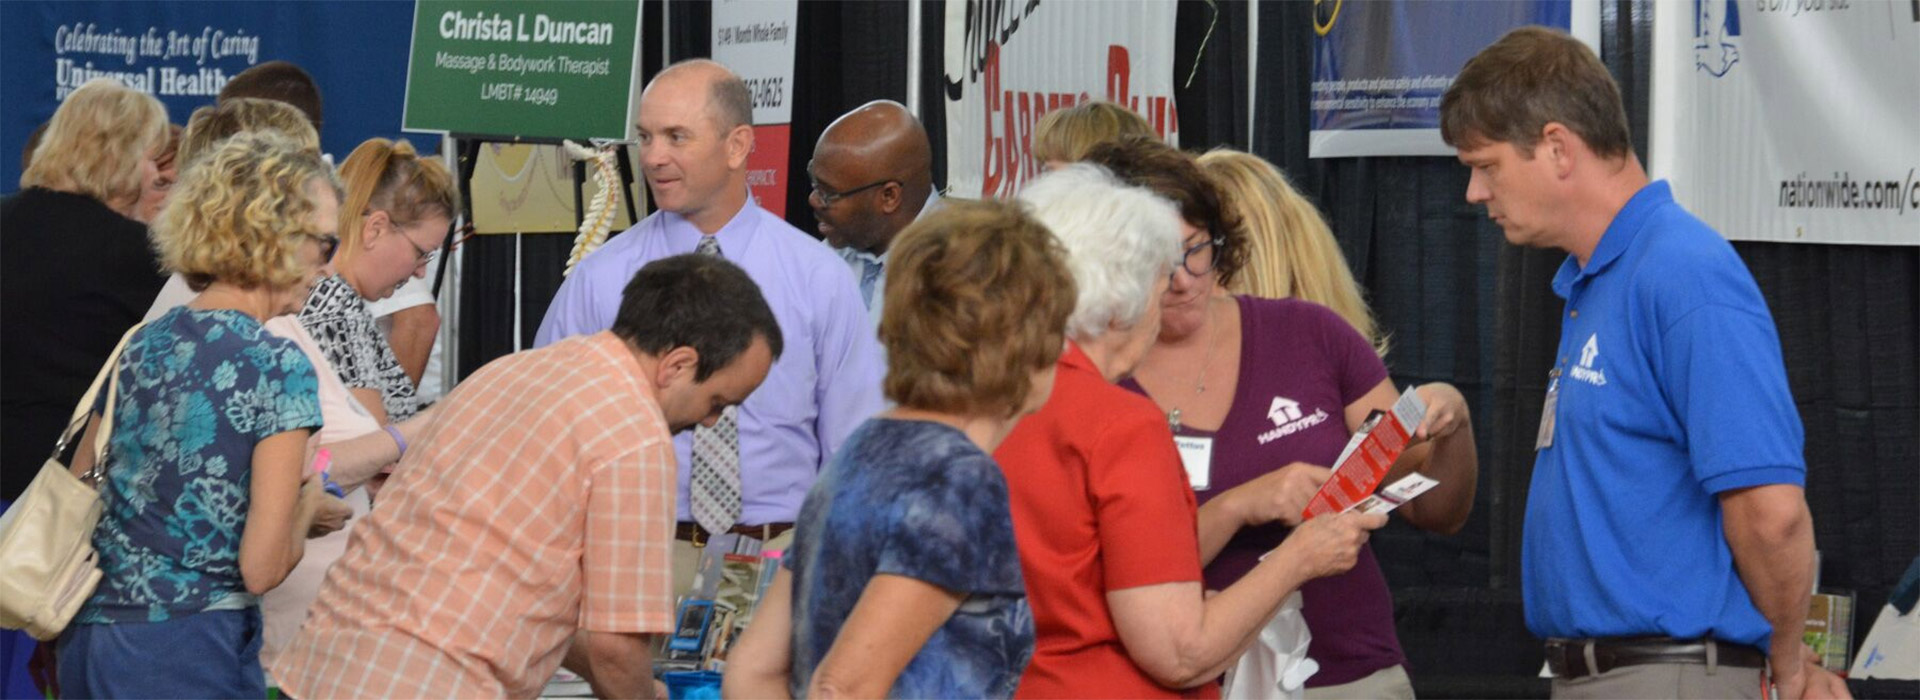 core connection business expo